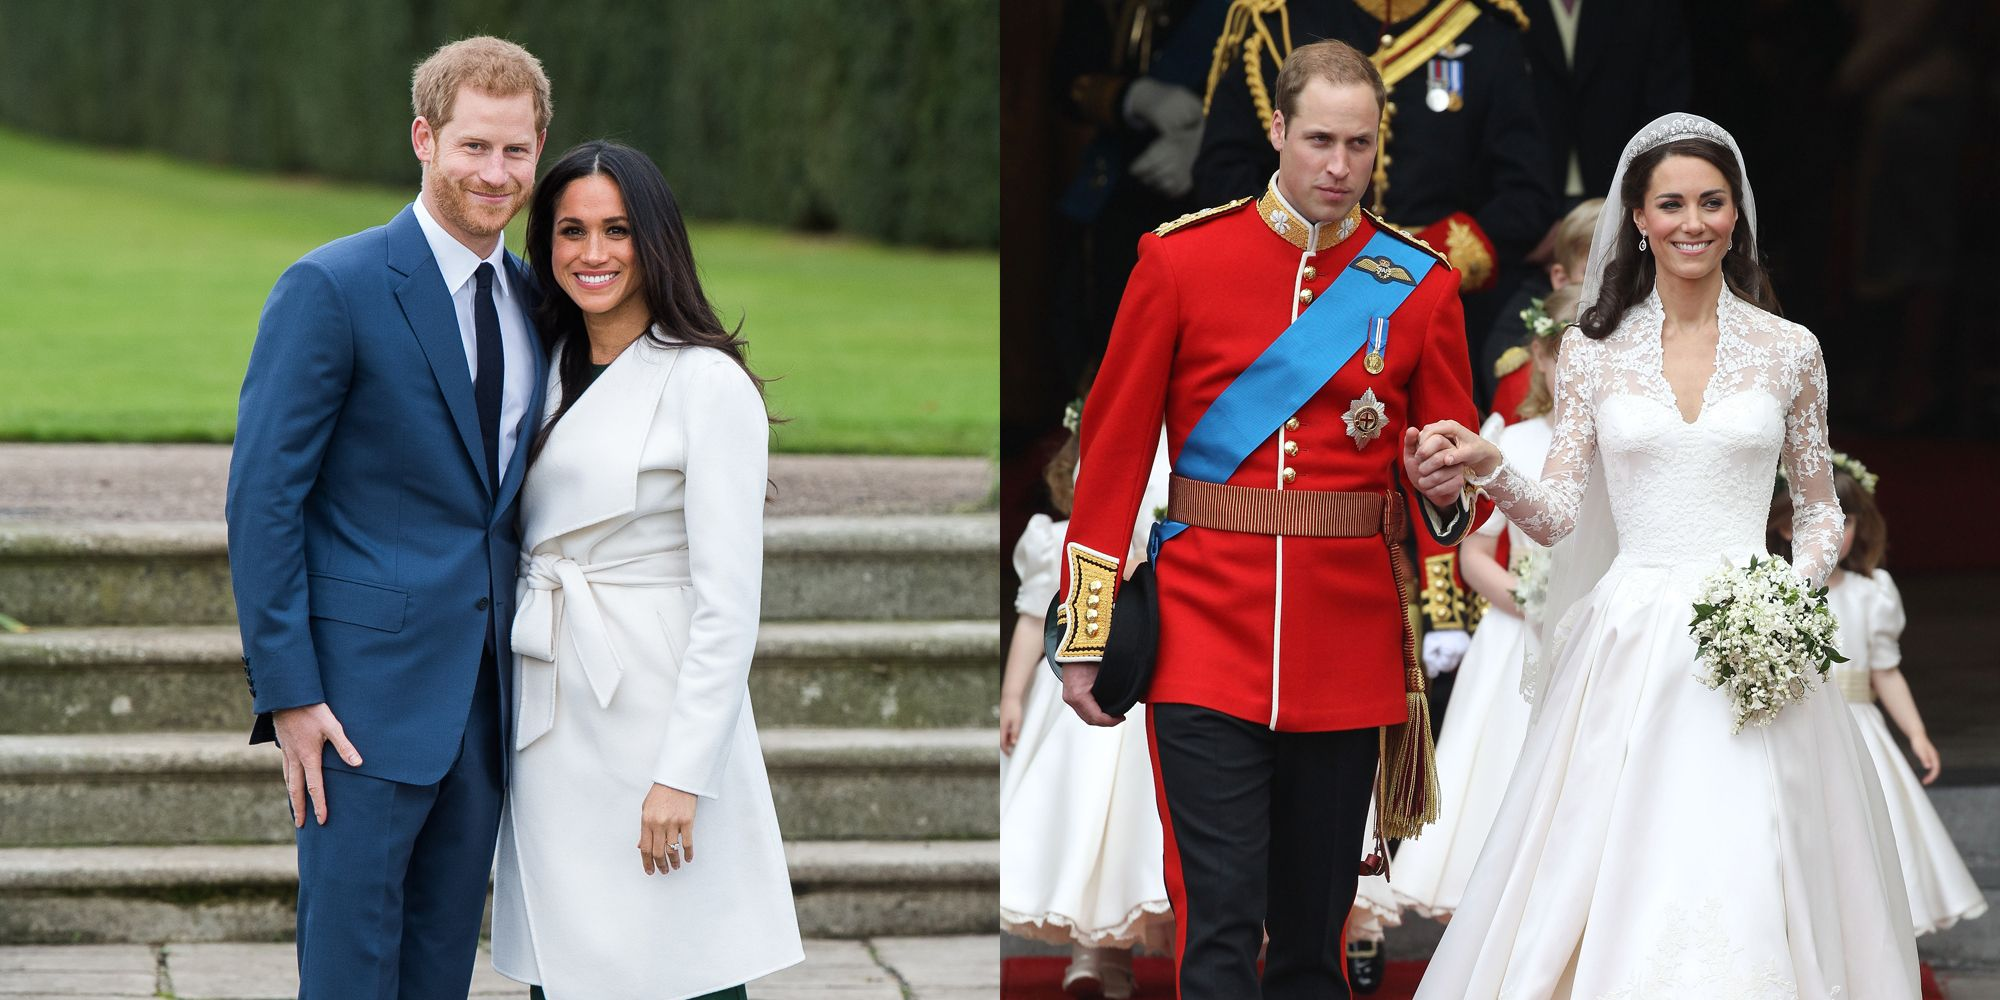 Harry and Meghan, William and Kate